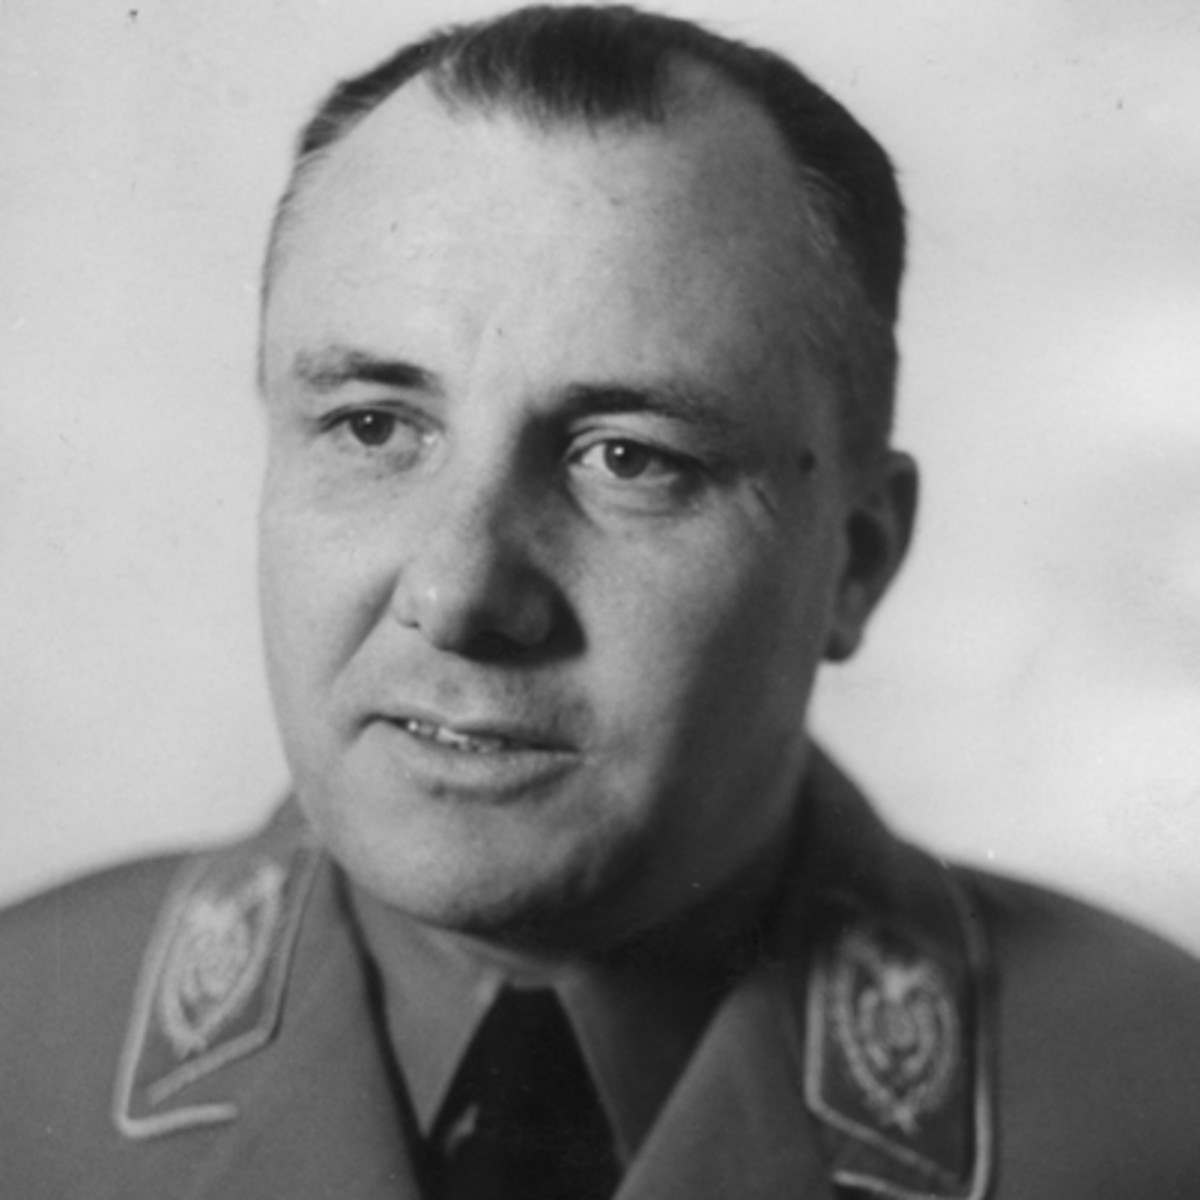 """an examination of the role of josef mengel in the holocaust during world war ii From the 1950s through the '80s, the mossad strove to find the most wanted nazi war criminal, dr josef mengele, the """"angel of death"""" who conducted sadistic medical experiments on jewish prisoners at auschwitz the hunt for mengele, which included scenes that would impress a thriller screenwriter."""